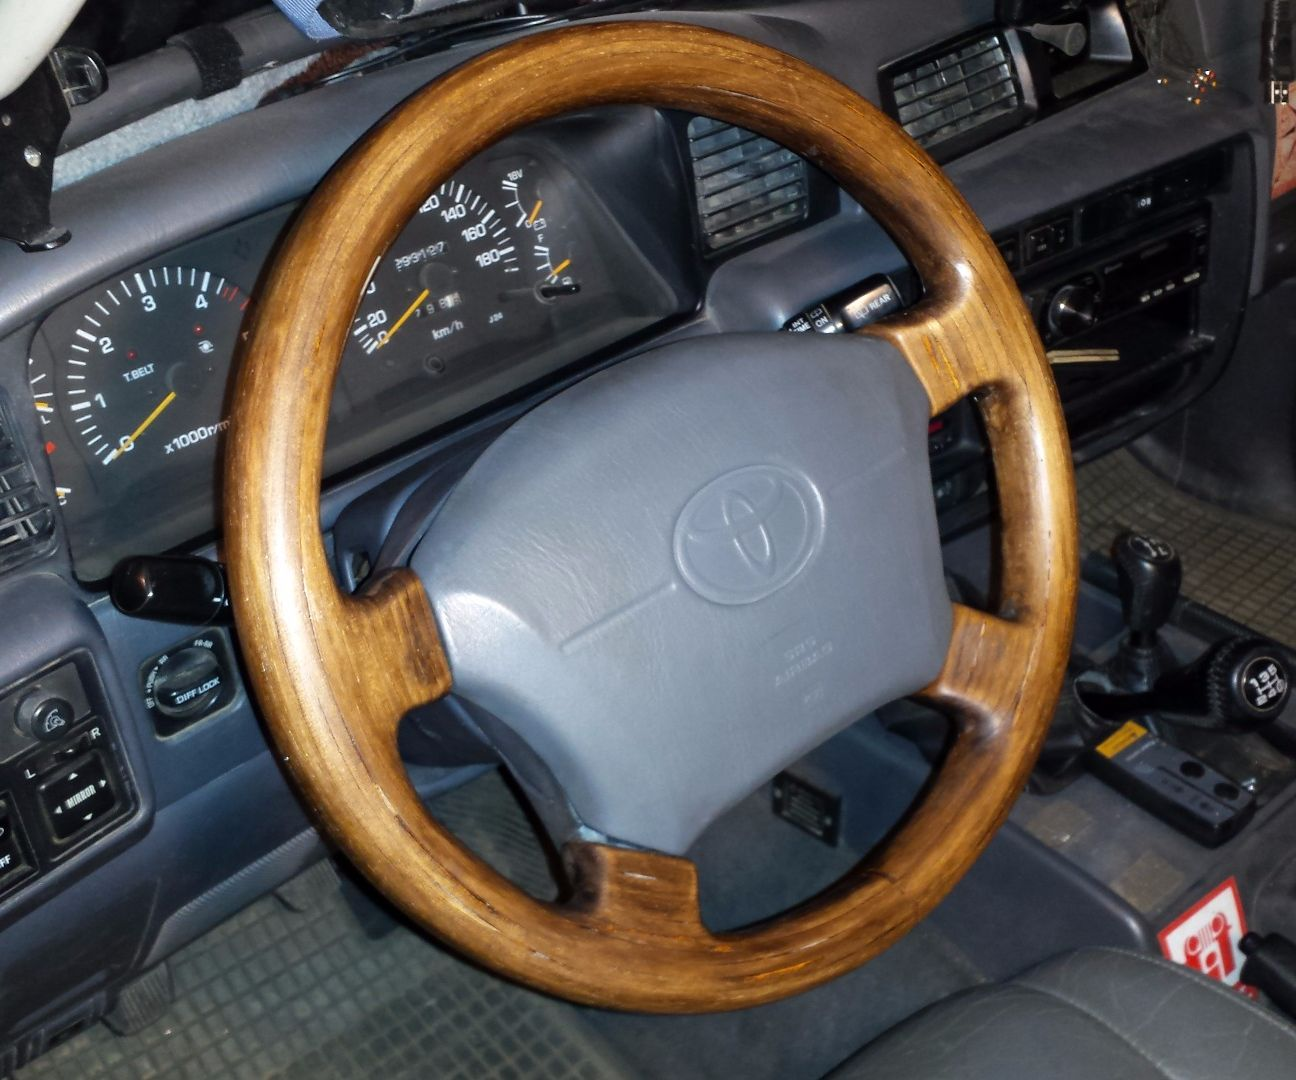 Rebuild a steering wheel with wood